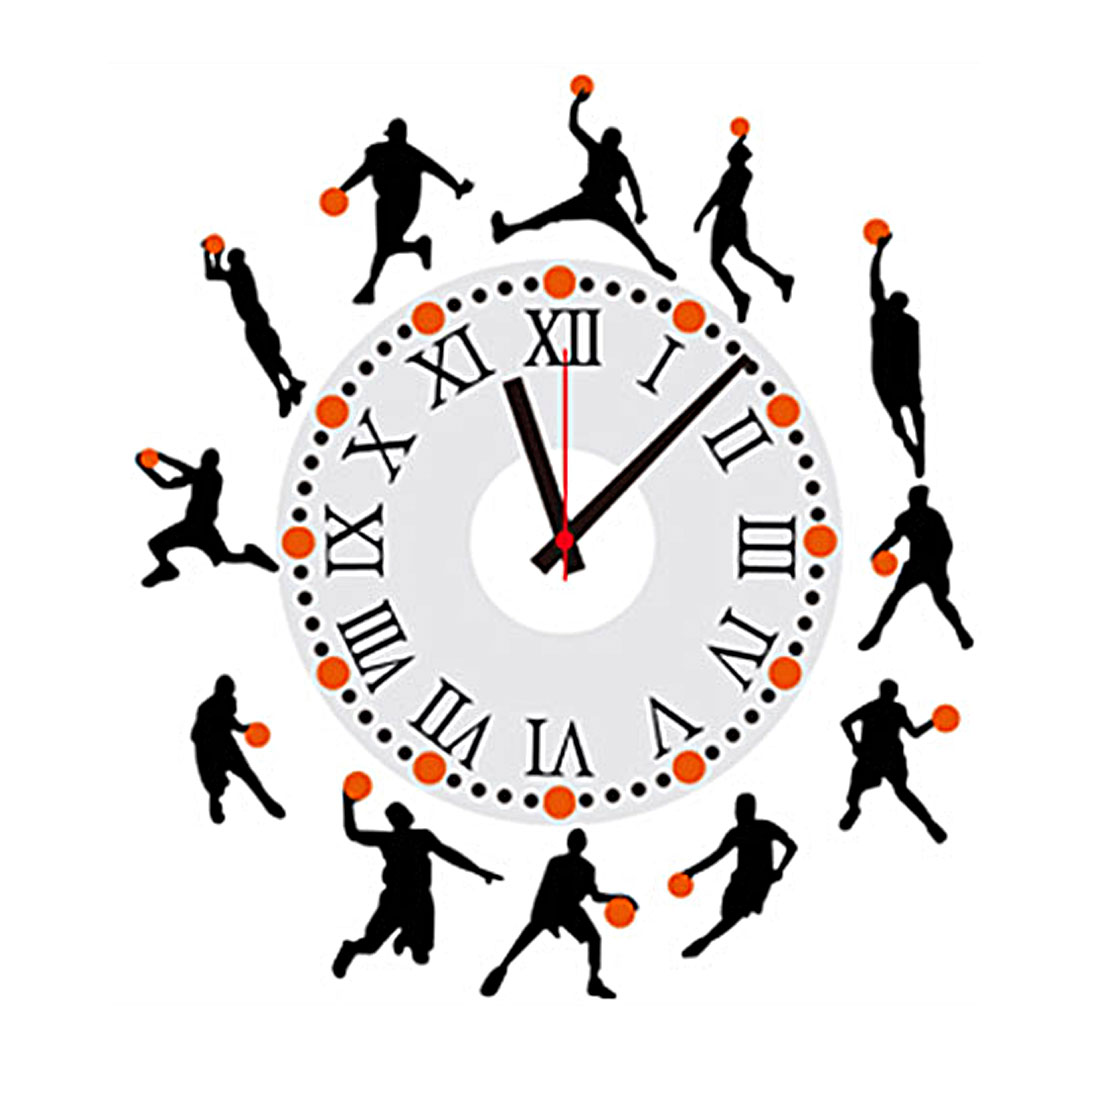 Home Office PVC Basketball Man Pattern Removable Water Resistant DIY 3D Wall Decoration Clock Art Sticker Decal